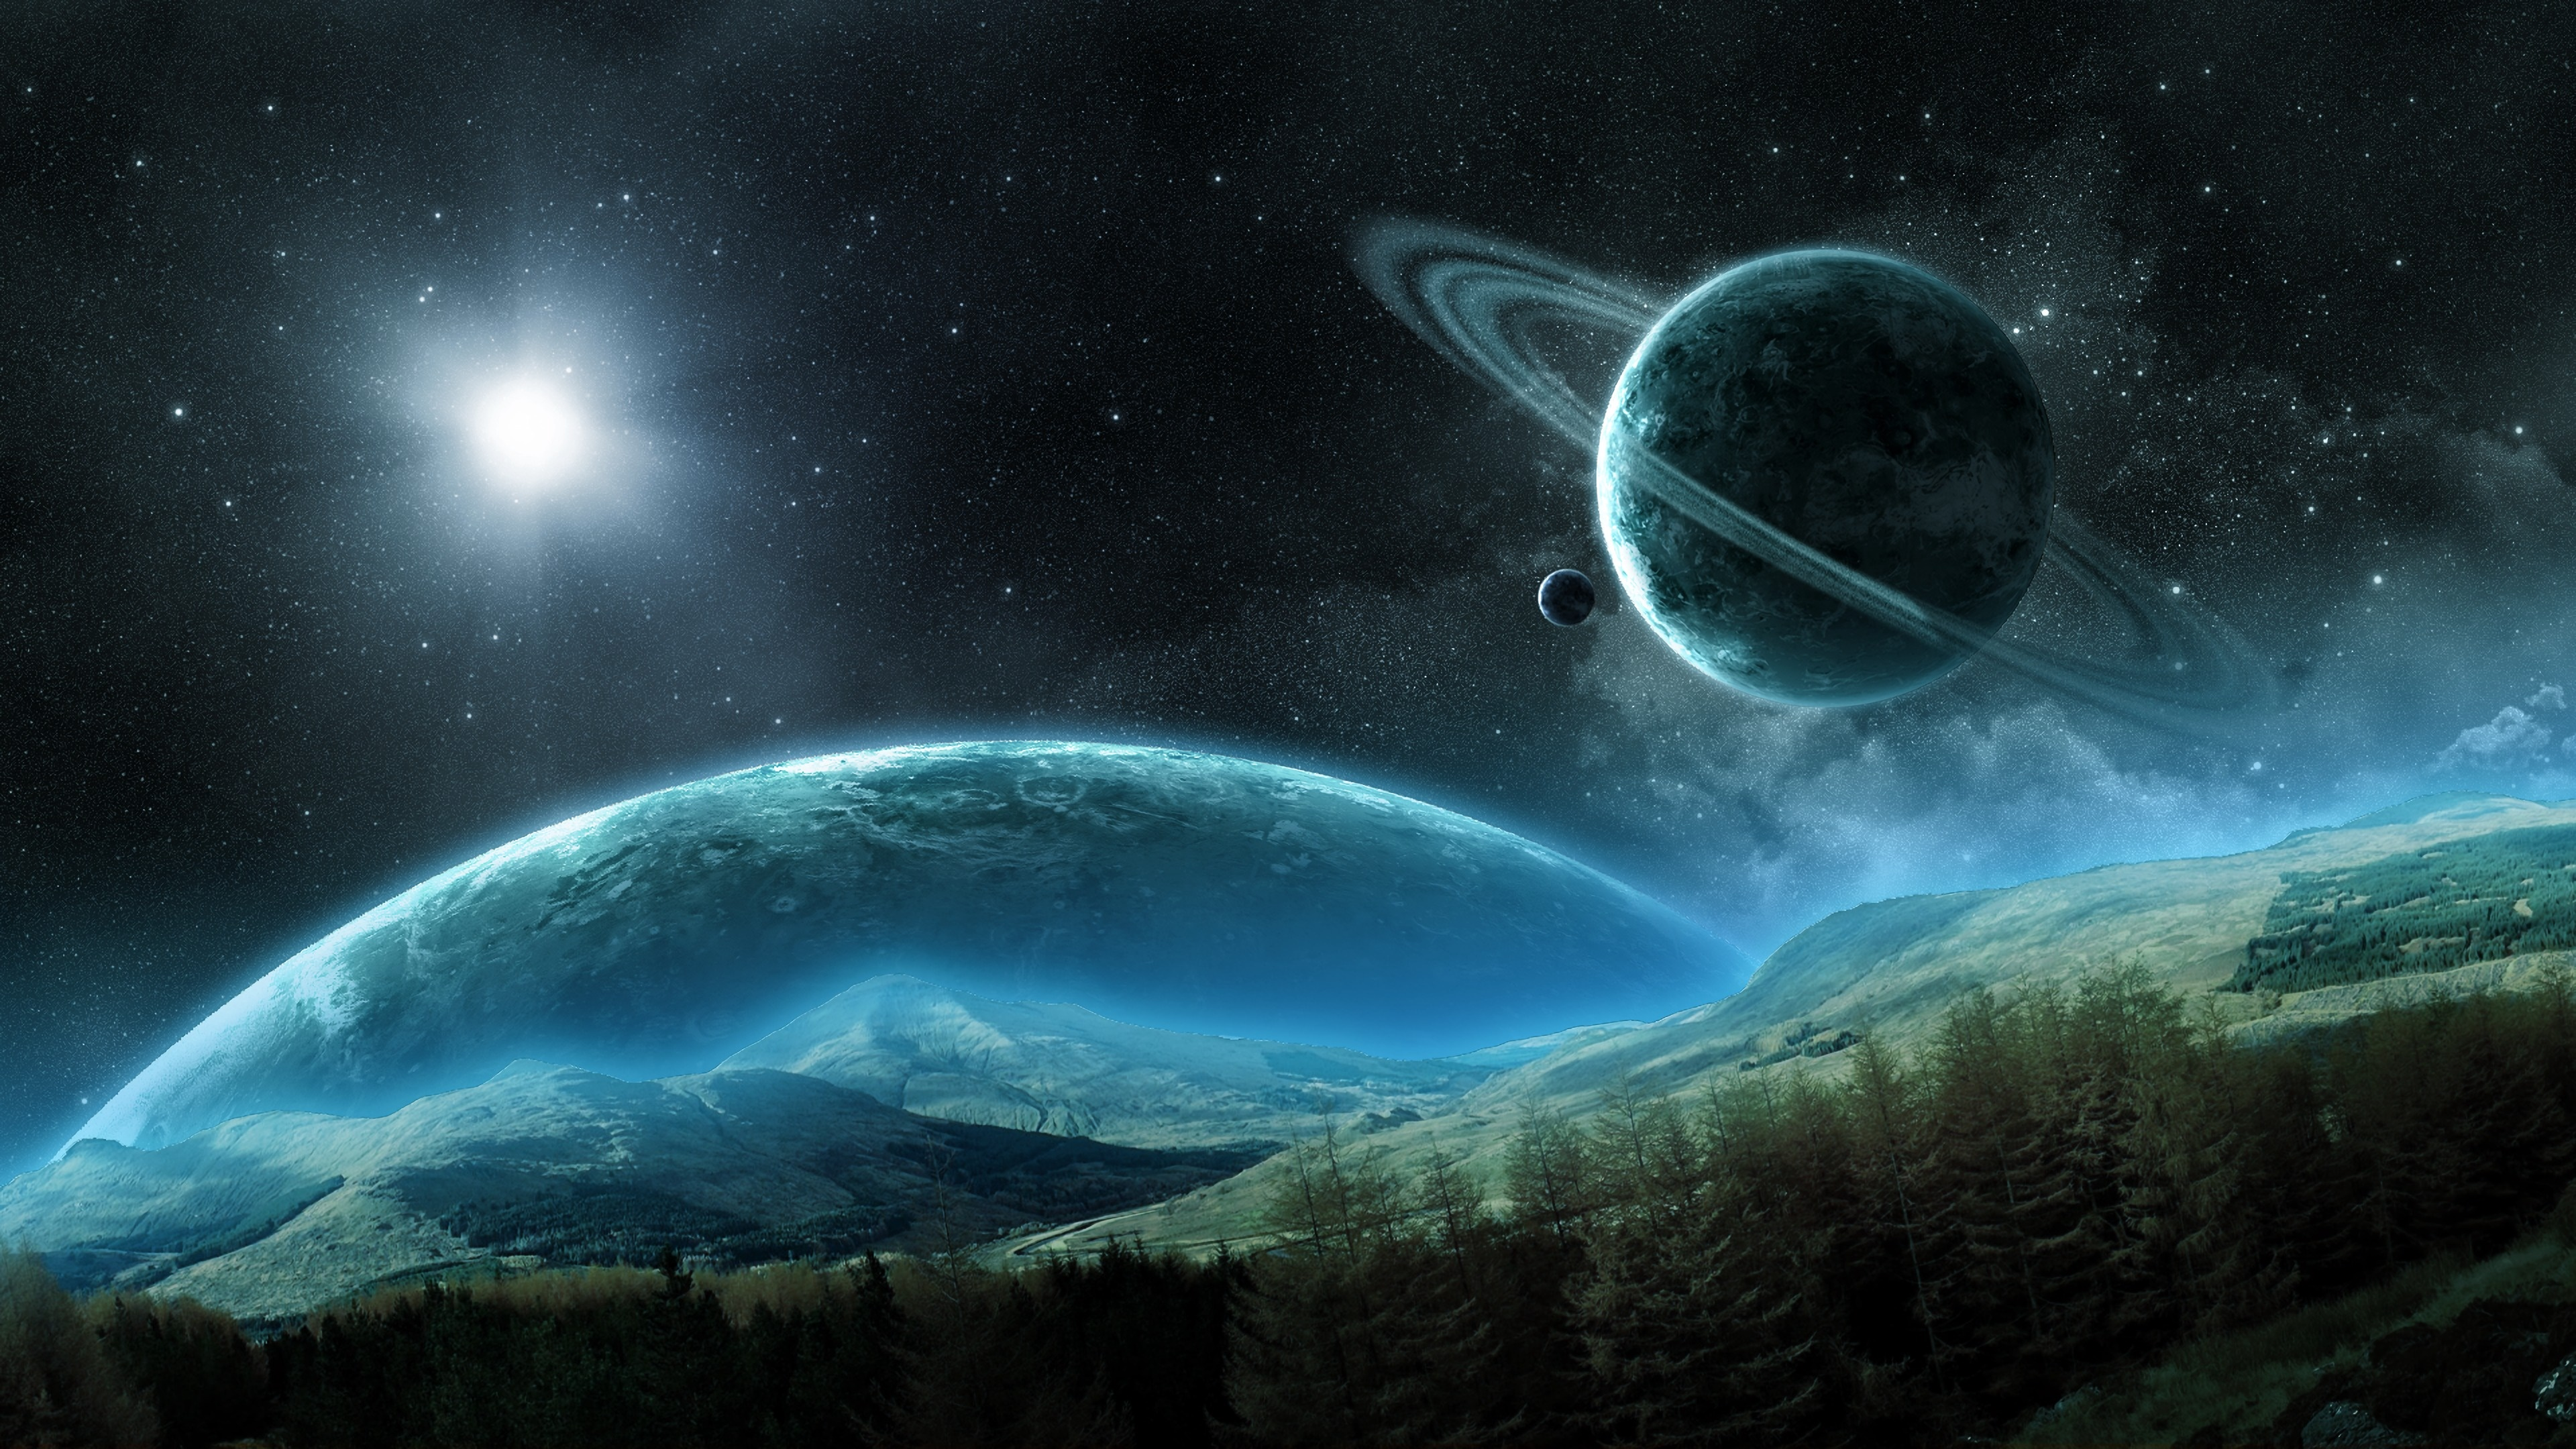 Planets in Outer Space 4k Ultra HD Wallpaper | Background Image | 3840x2160 | ID:1029255 ...